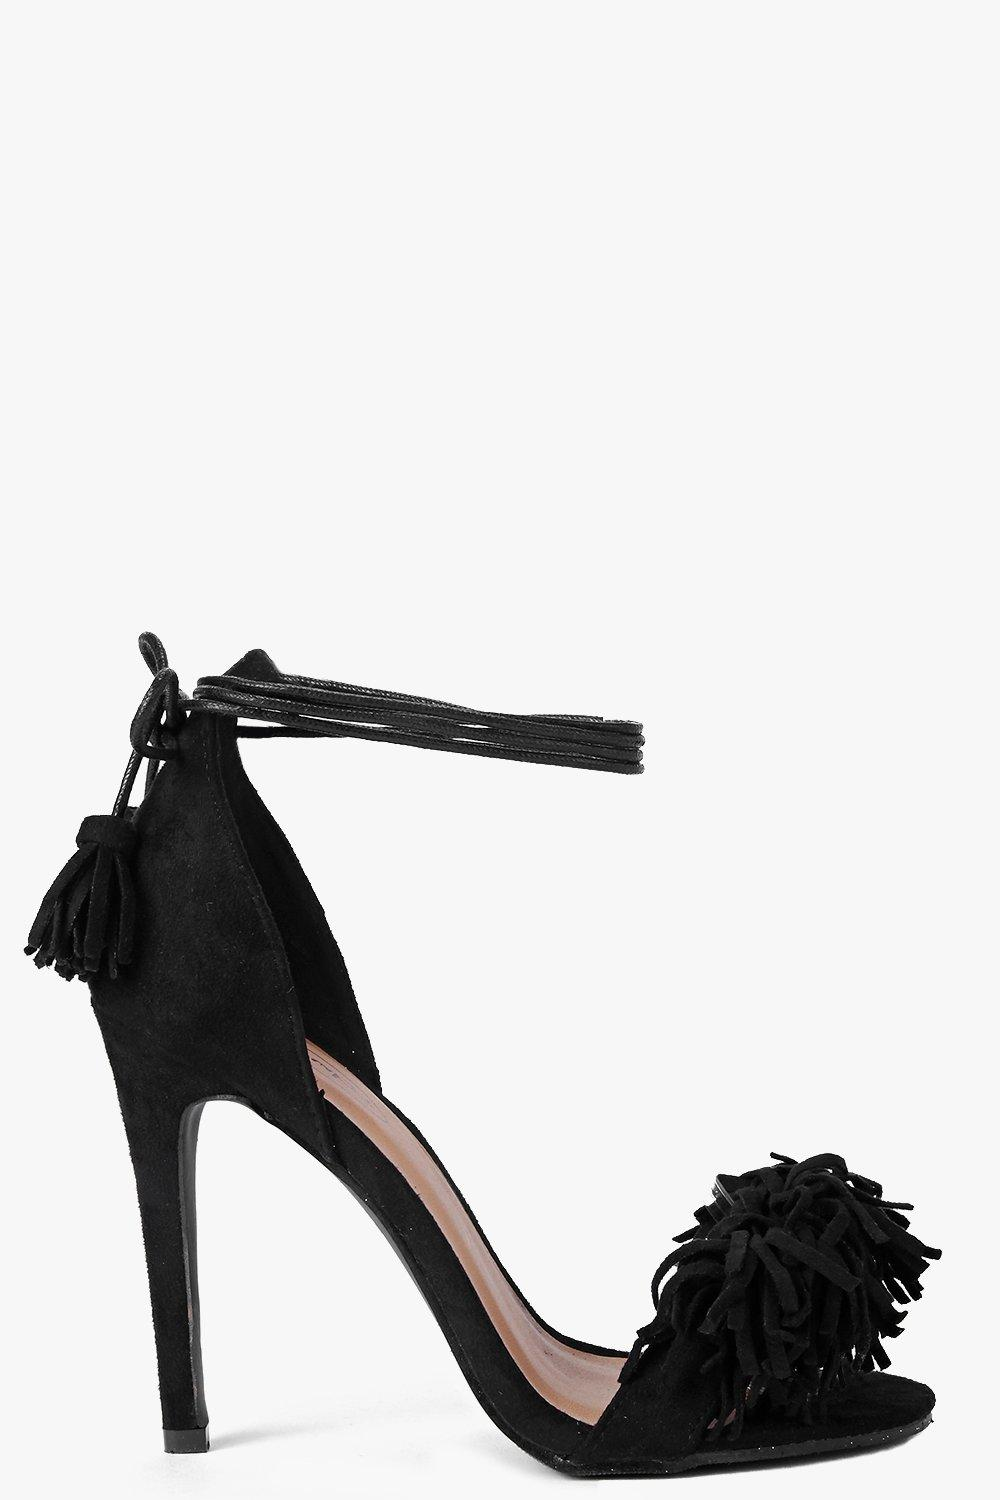 Fringe Trim Two Part Heels black